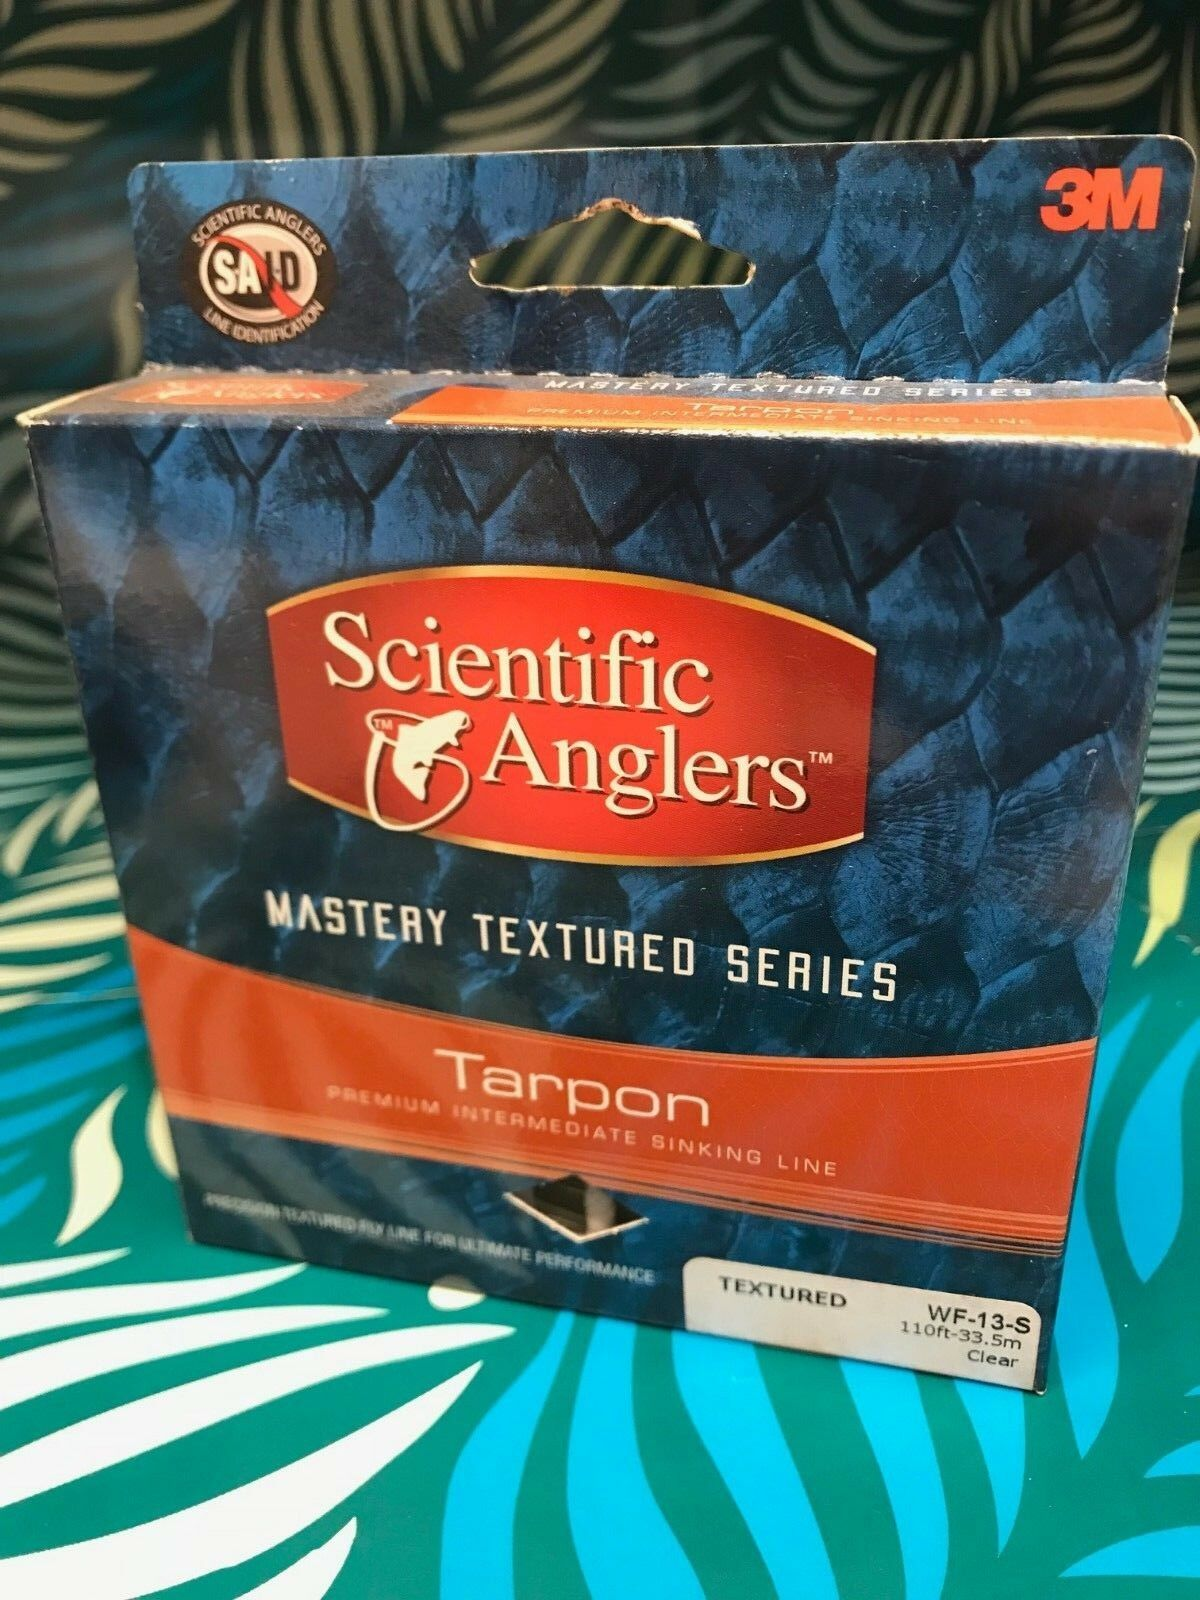 Scientific  Angler - Mastery Textured Series - Tarpon WF-13-S  shop makes buying and selling